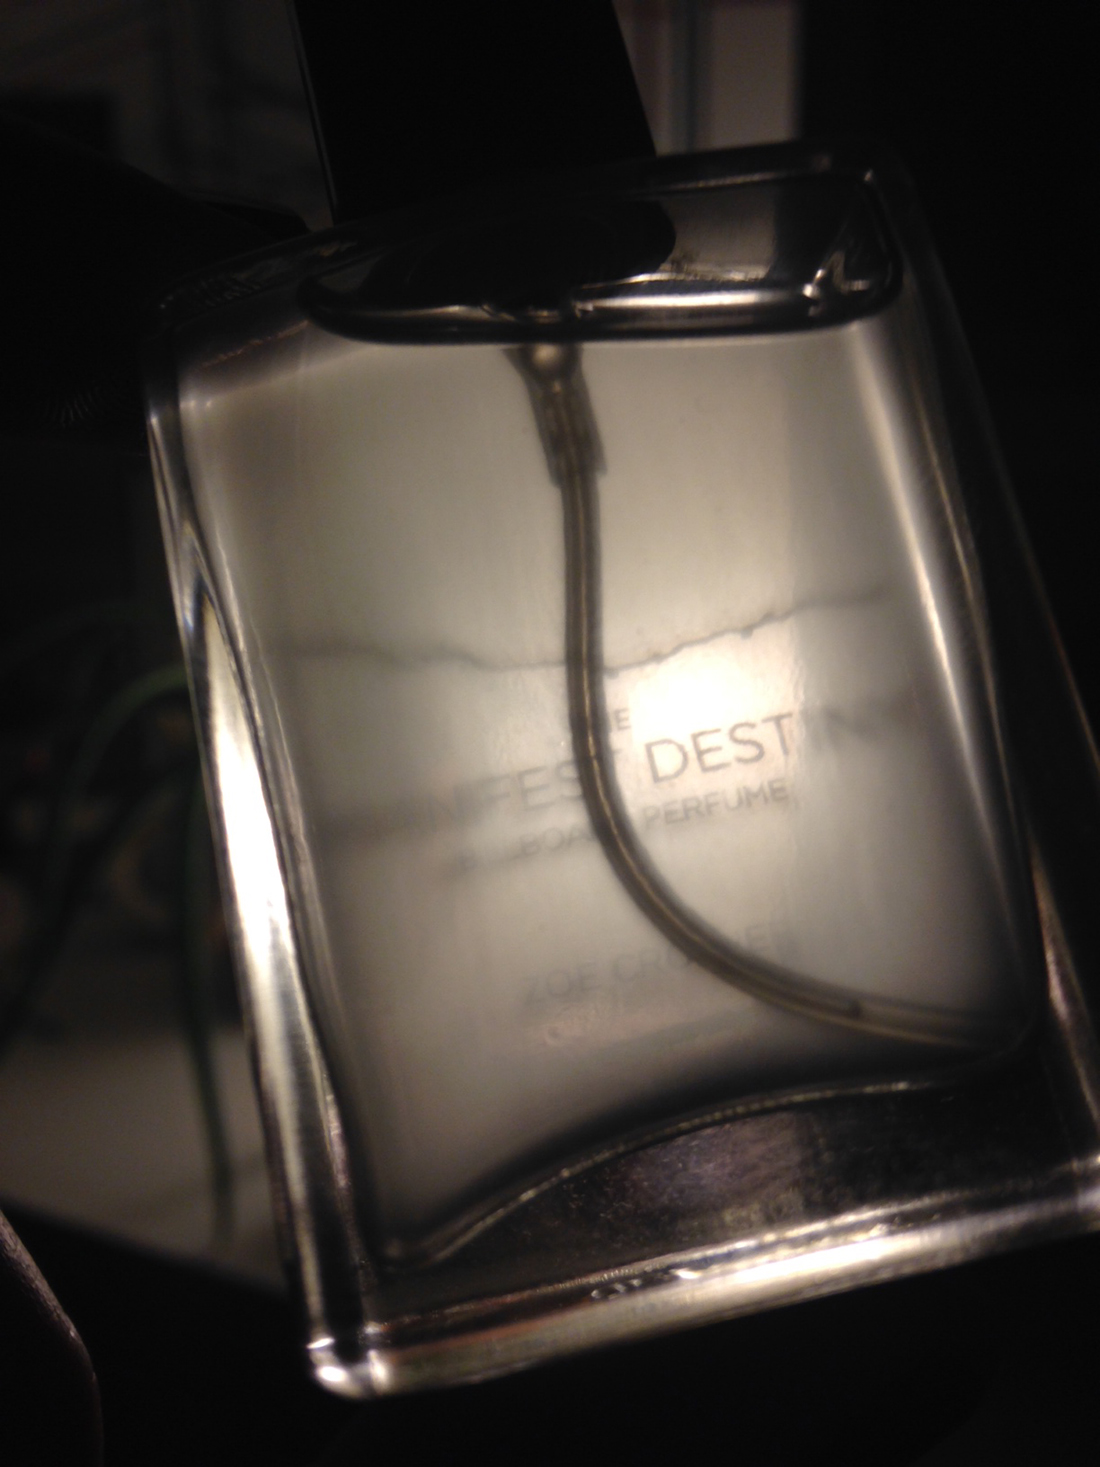 The Manifest Destiny Perfume - The Cloudy Mobile Version